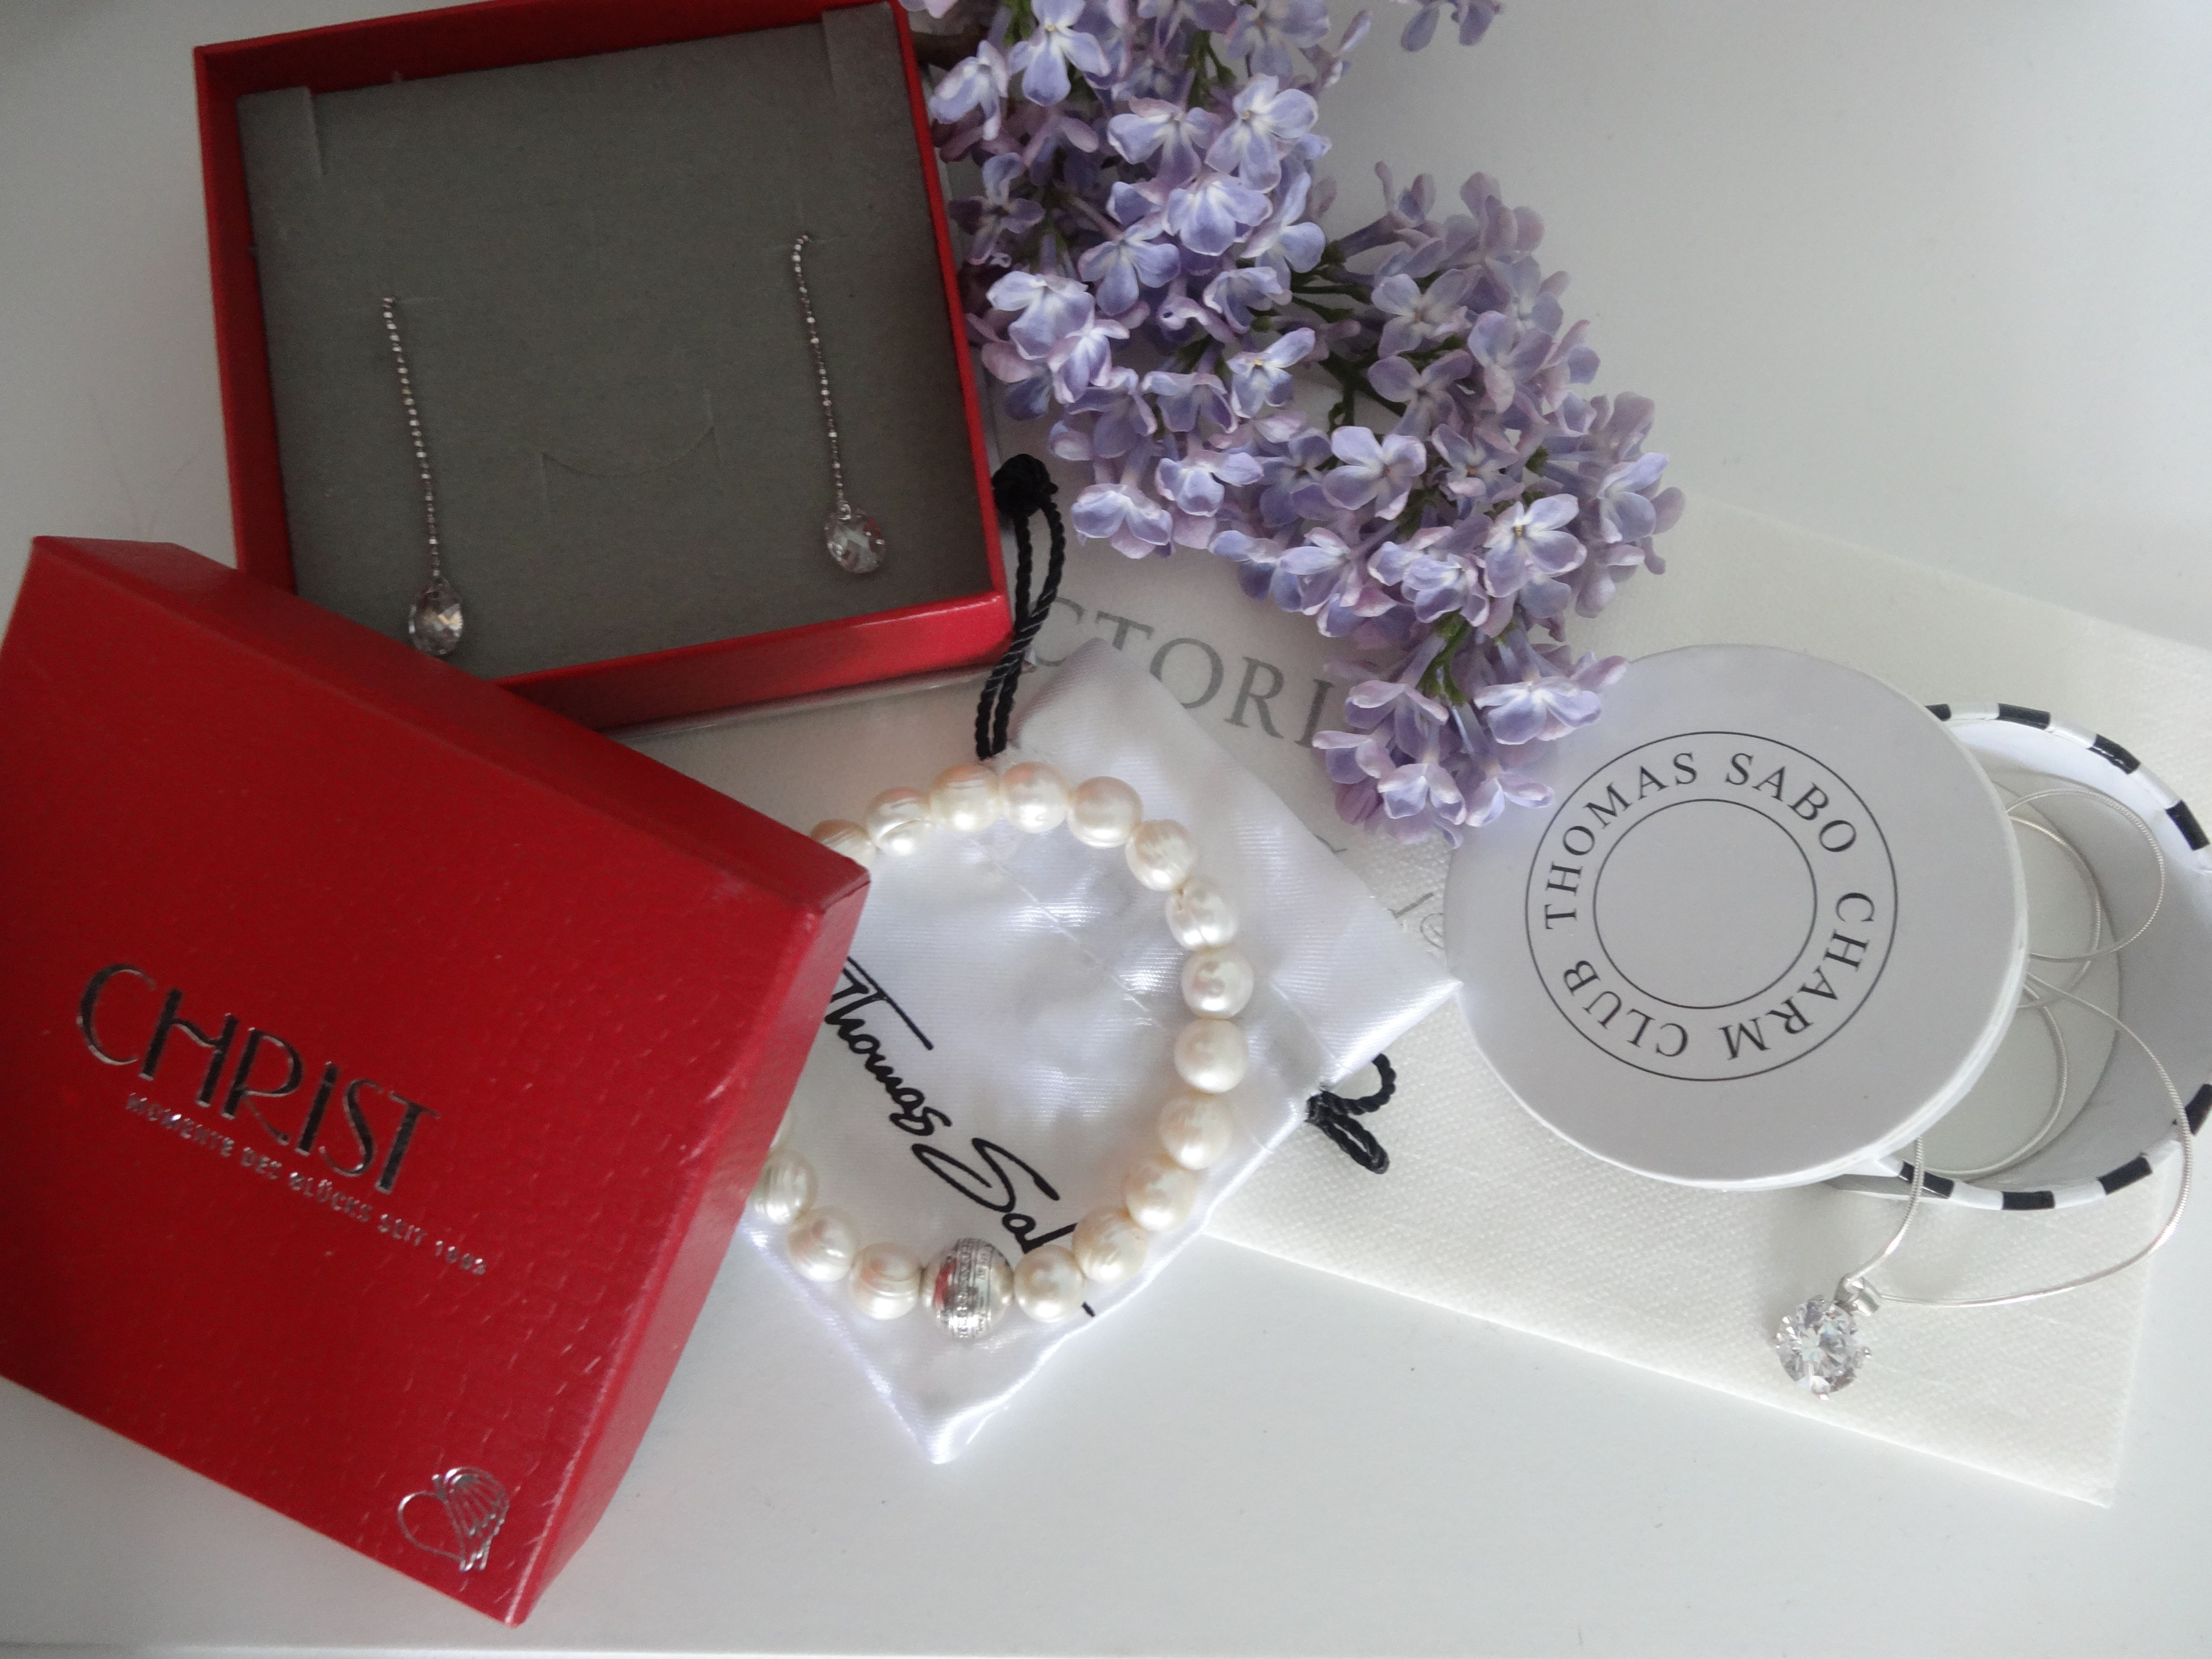 Get ready fror prom. Thomas Sabo bracelet and chain make you look beautiful!